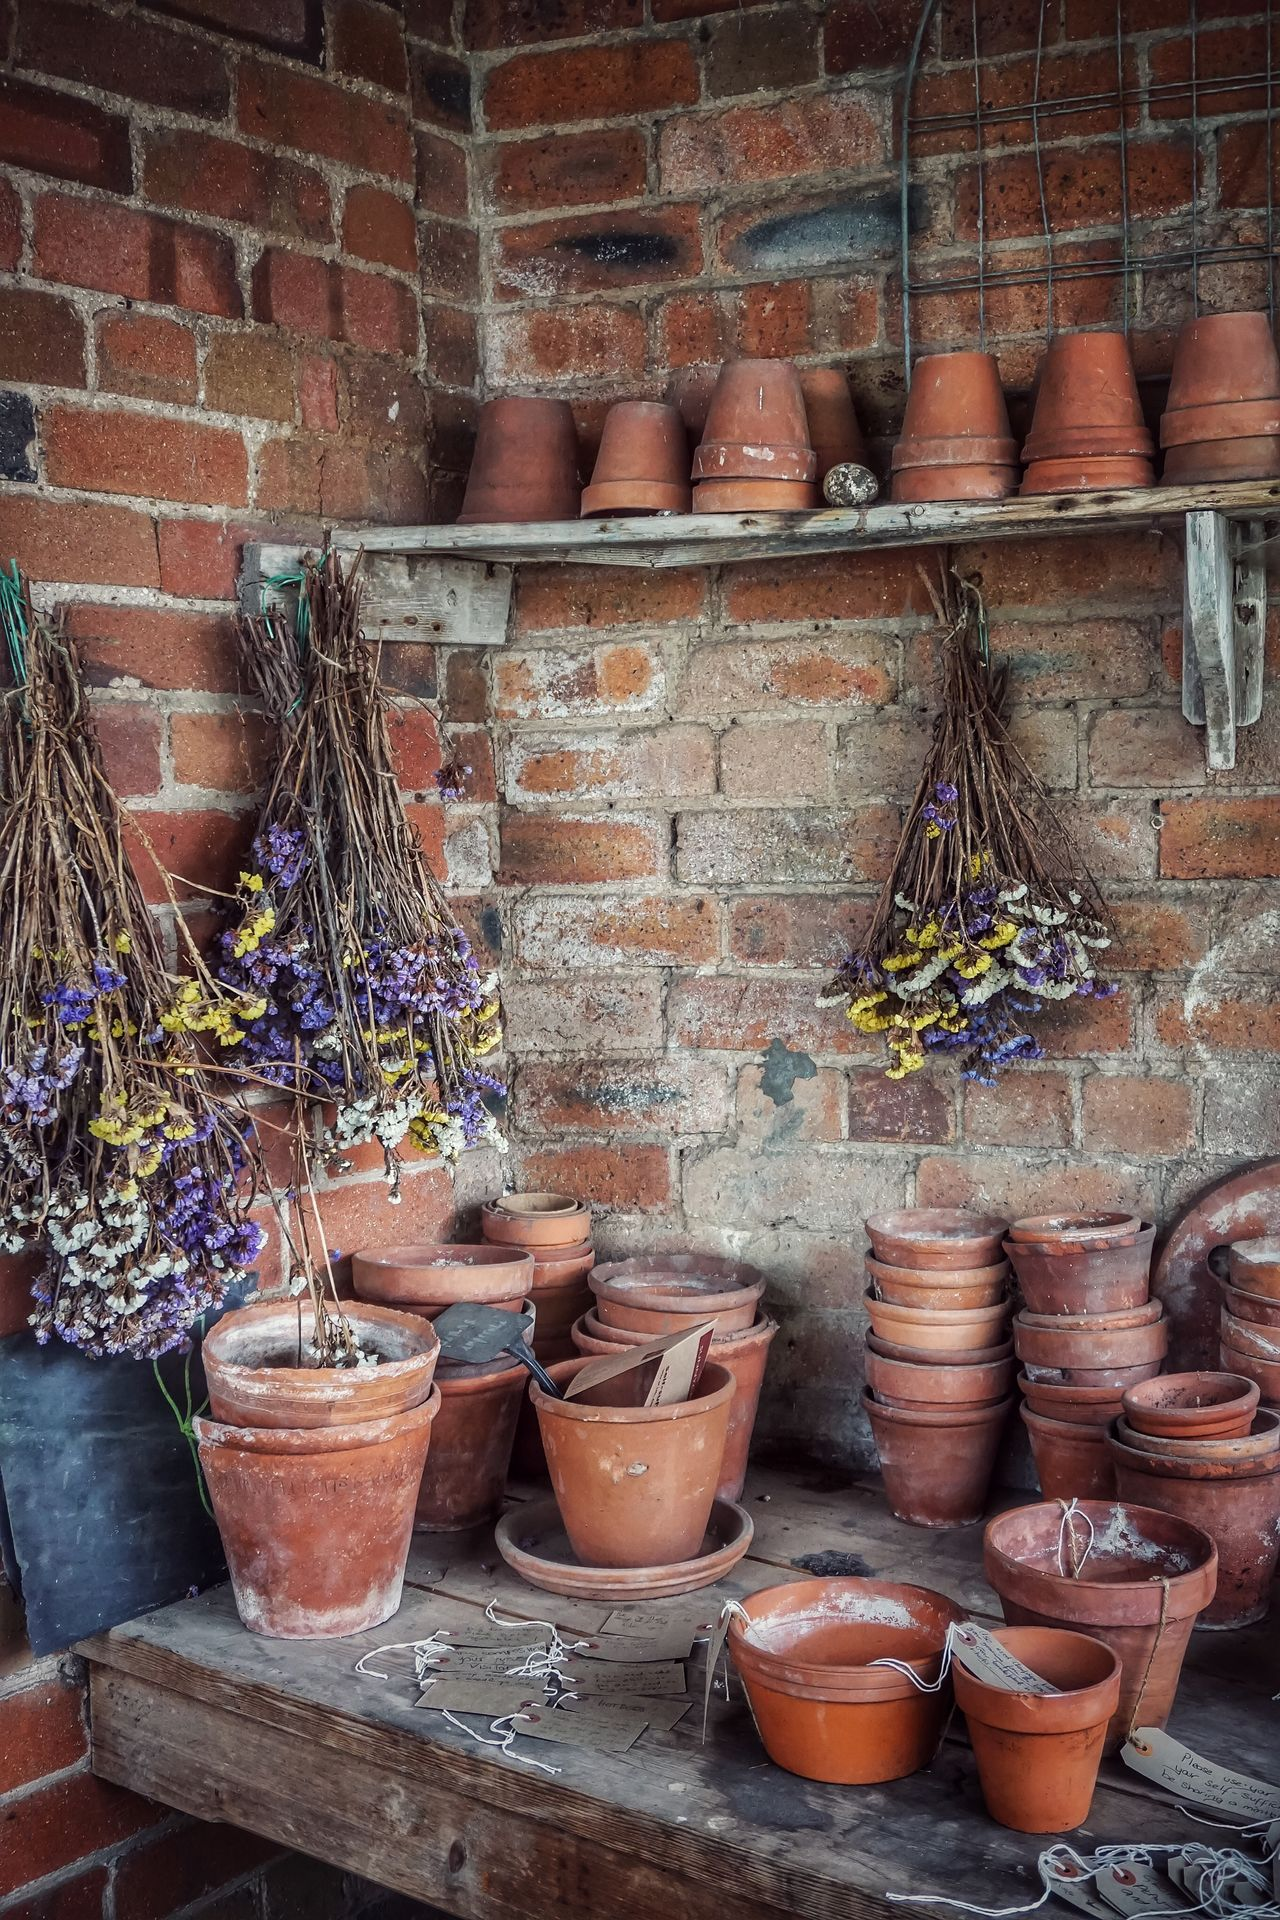 Potting Shed Potting Potted Plant Pottery Pot Flower Pot Flowerpot Terracotta Terracotta Pot Green House Greenhouse Glasshouse Brick Wall Plants Plant Planting Dried Flowers Tag Planting Seeds EyeEm Nature Lover EyeEm Gallery Eye4photography